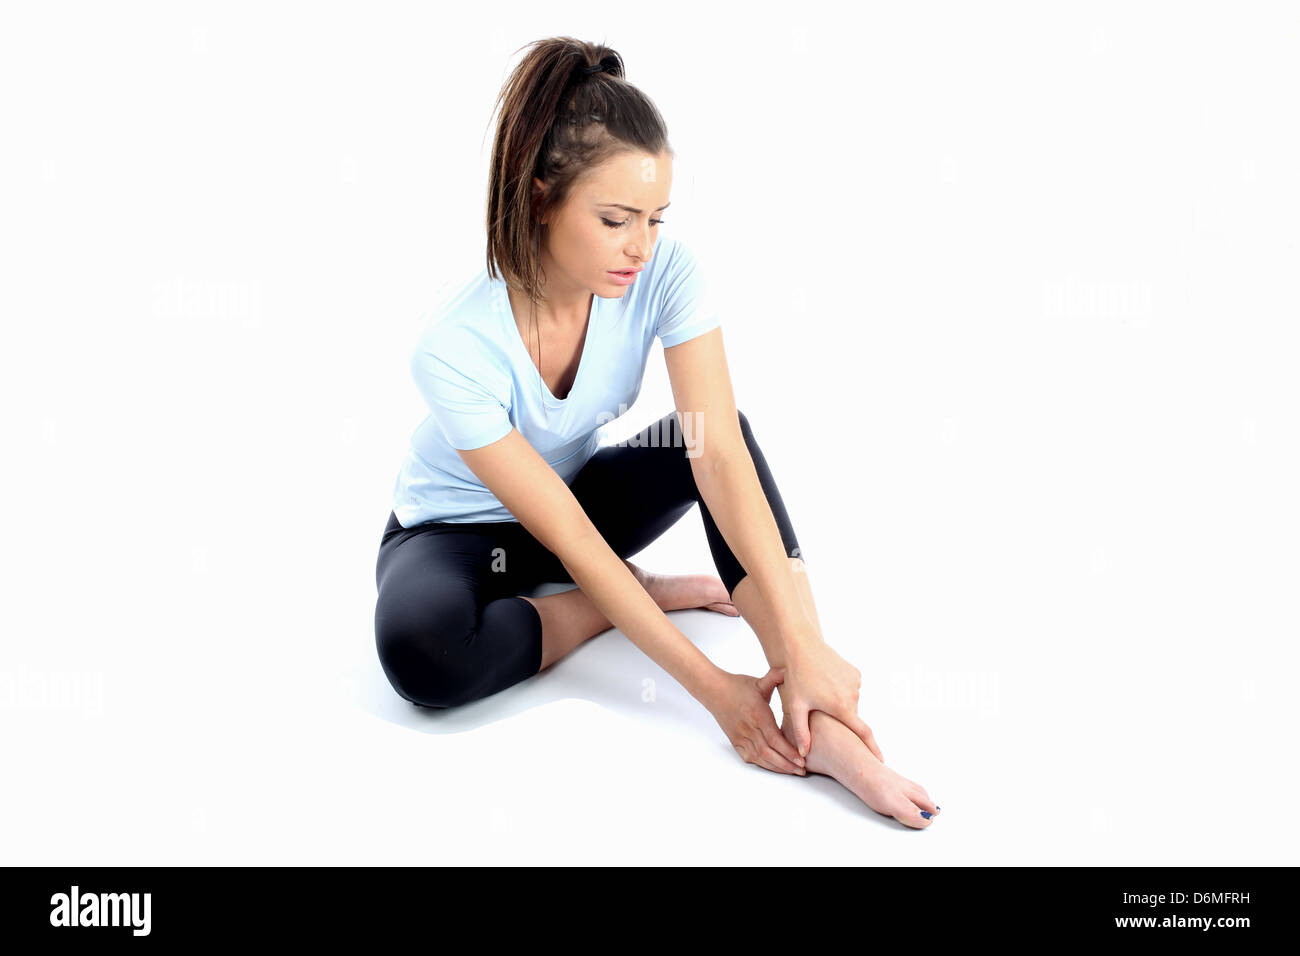 Model Released. Woman With Ankle Sports Injury - Stock Image